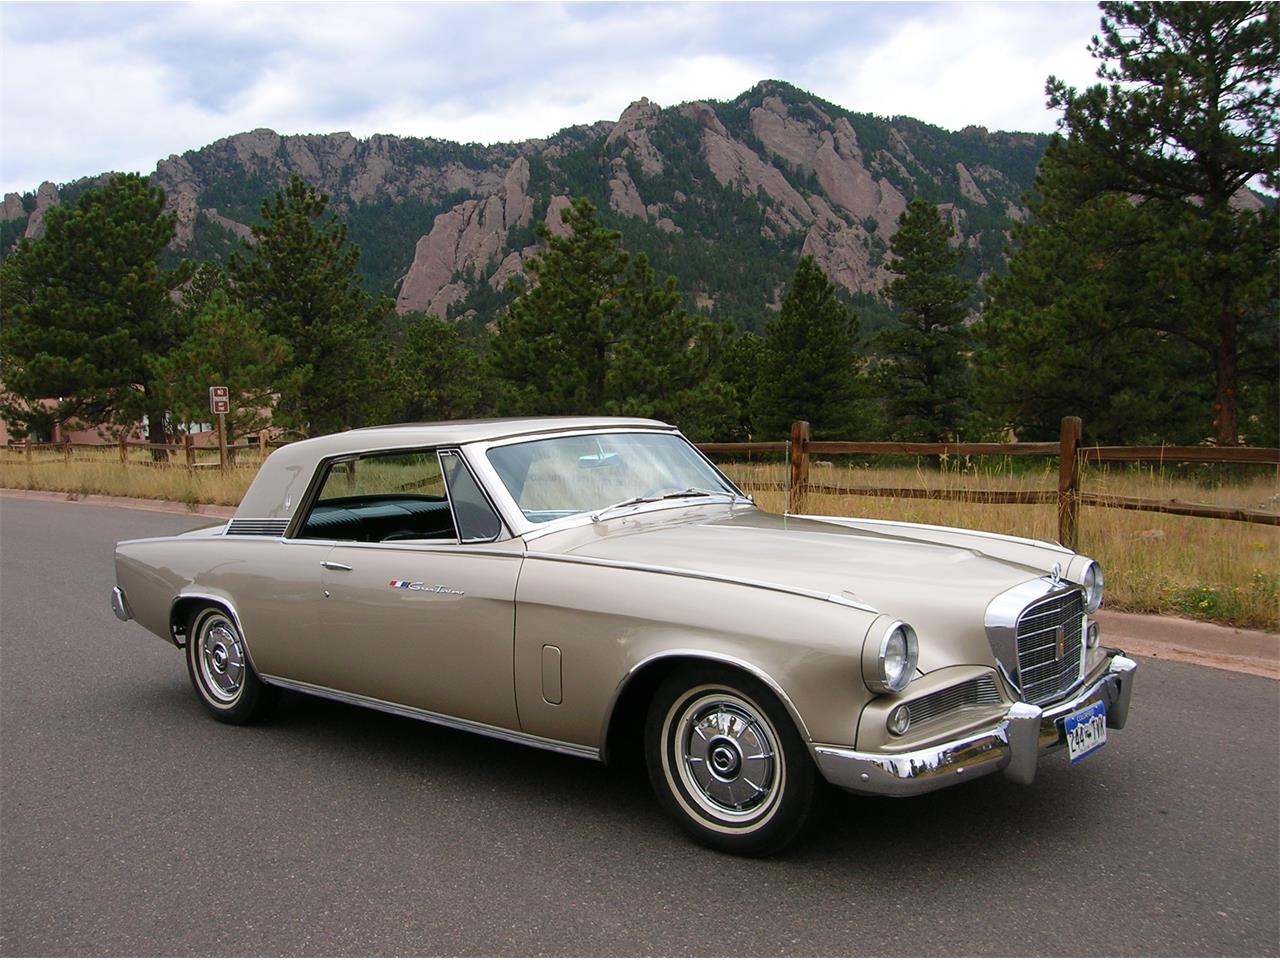 Large Picture of 1964 Studebaker Gran Turismo located in Colorado - $21,500.00 Offered by a Private Seller - LCSH